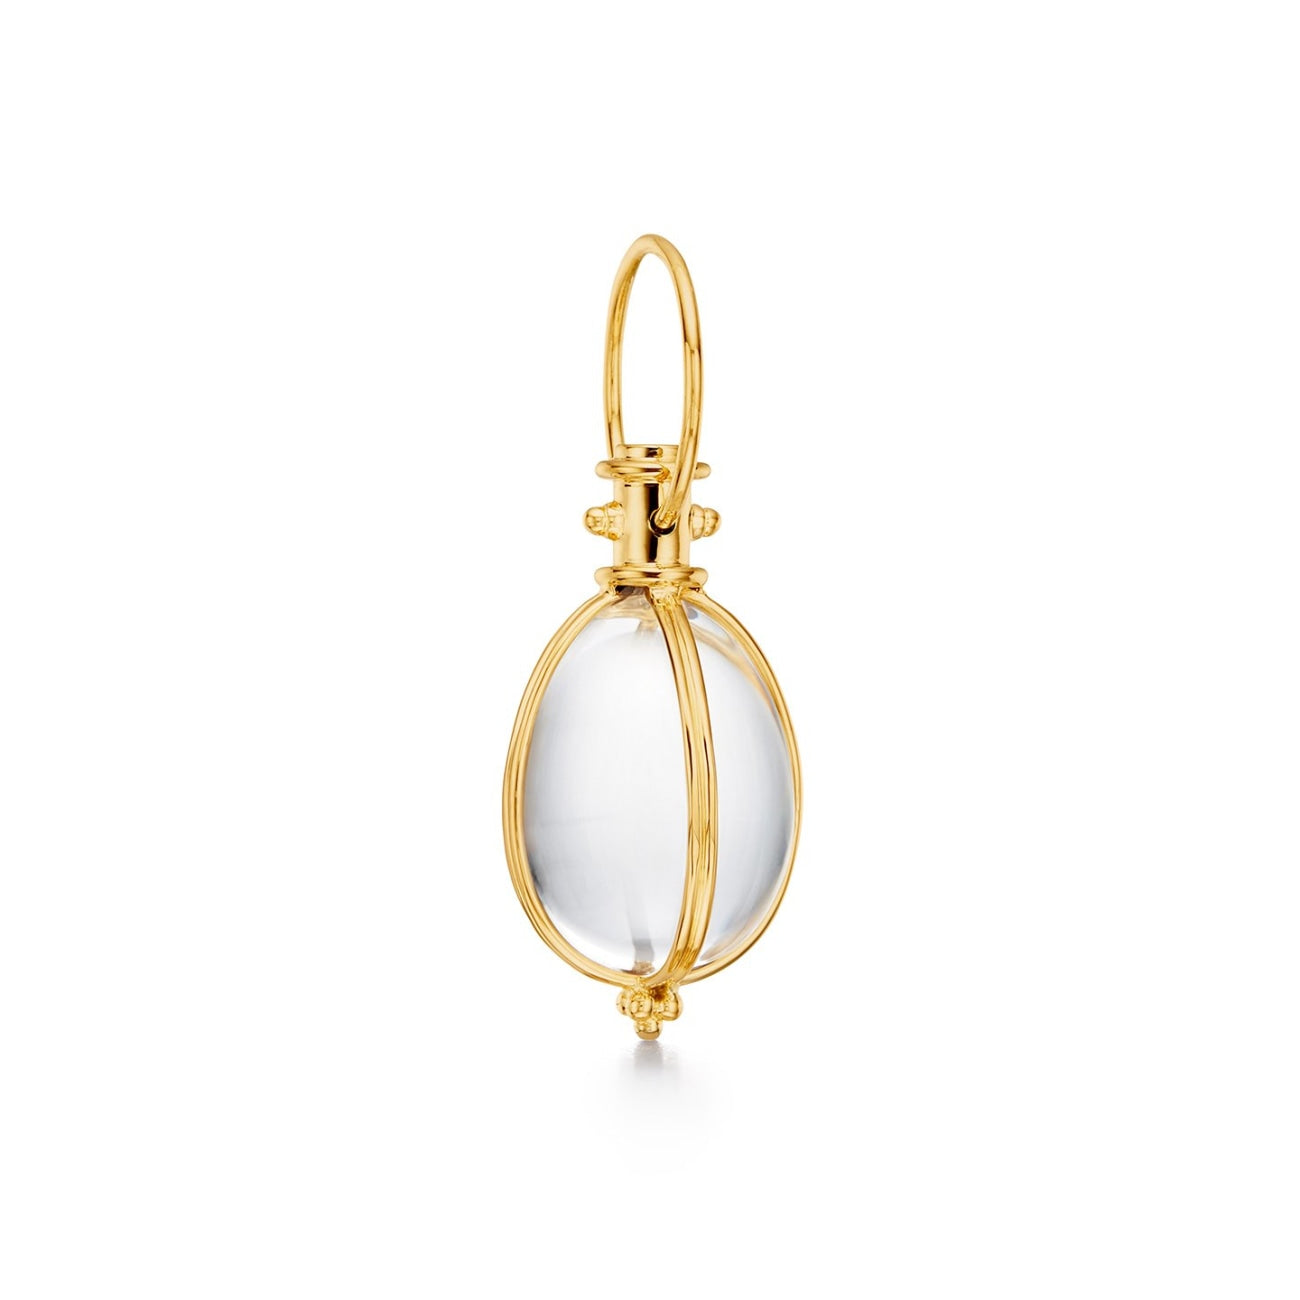 Temple St Clair Jewelry - 18K Classic Oval Amulet in all gold | Manfredi Jewels